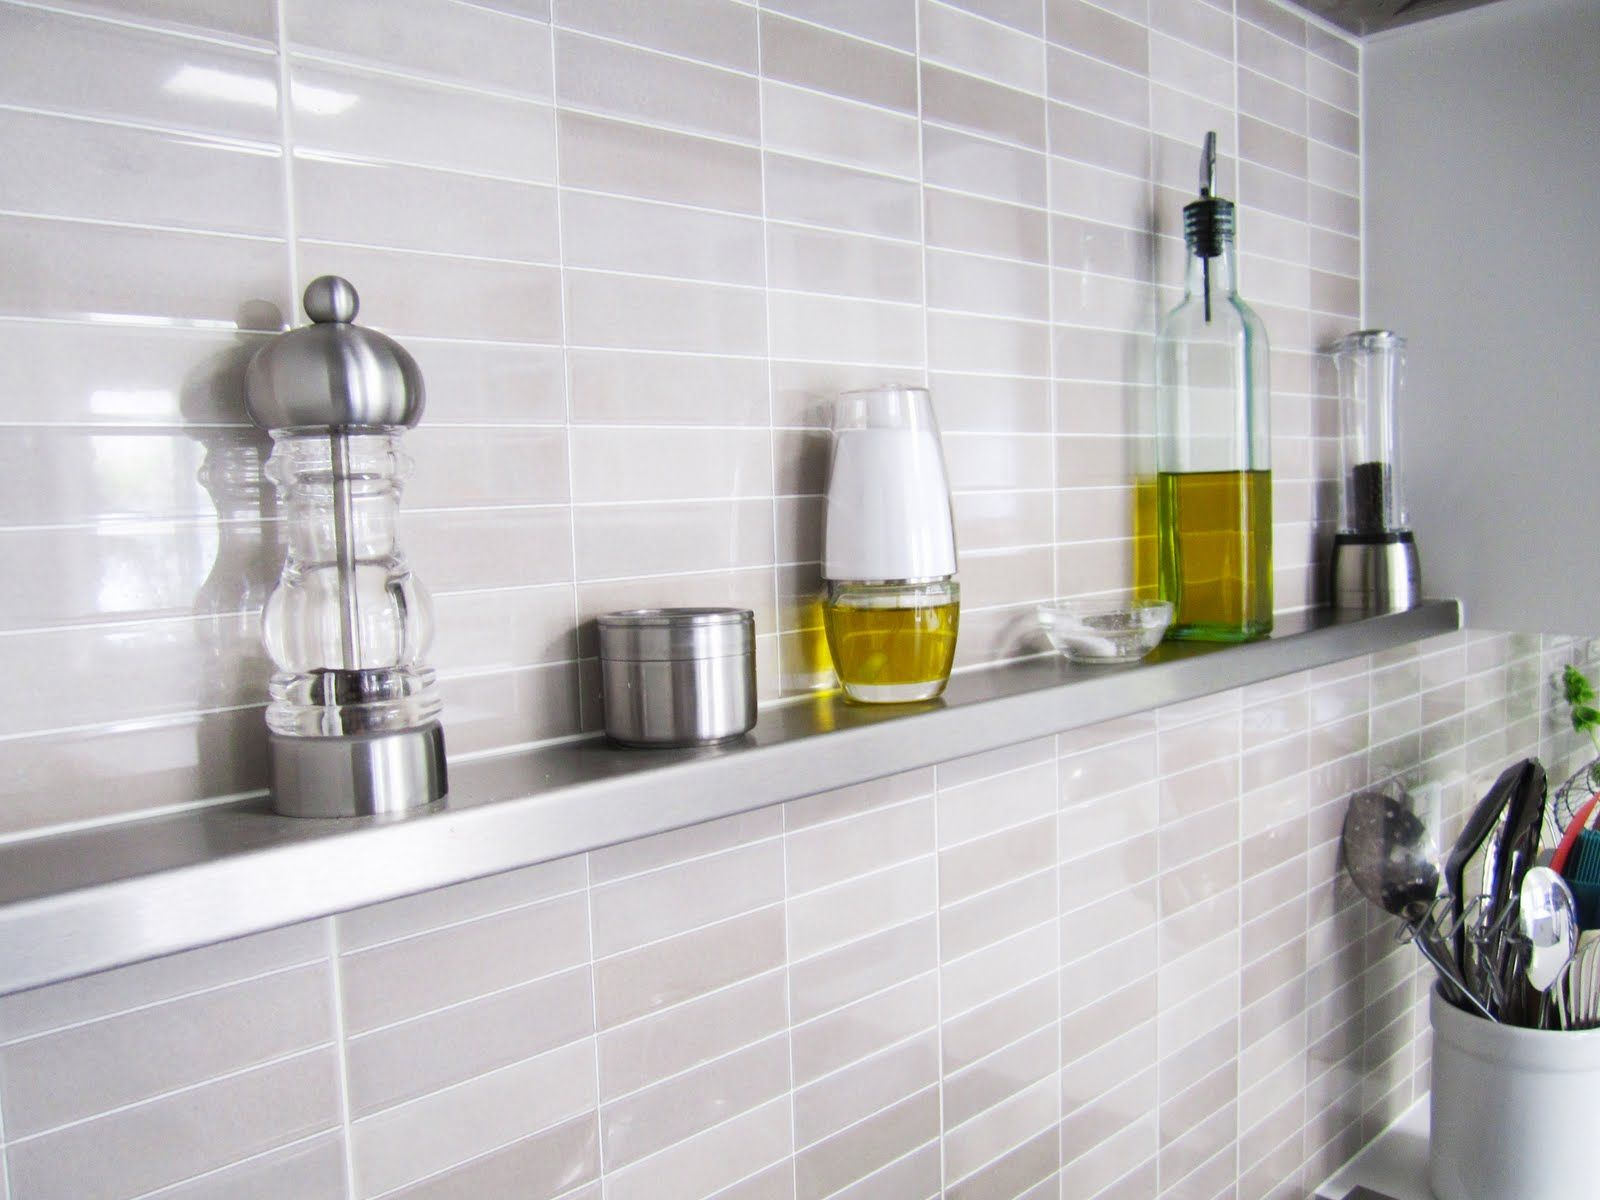 metal kitchen backsplash Stainless Steel Kitchen Shelves on the wall